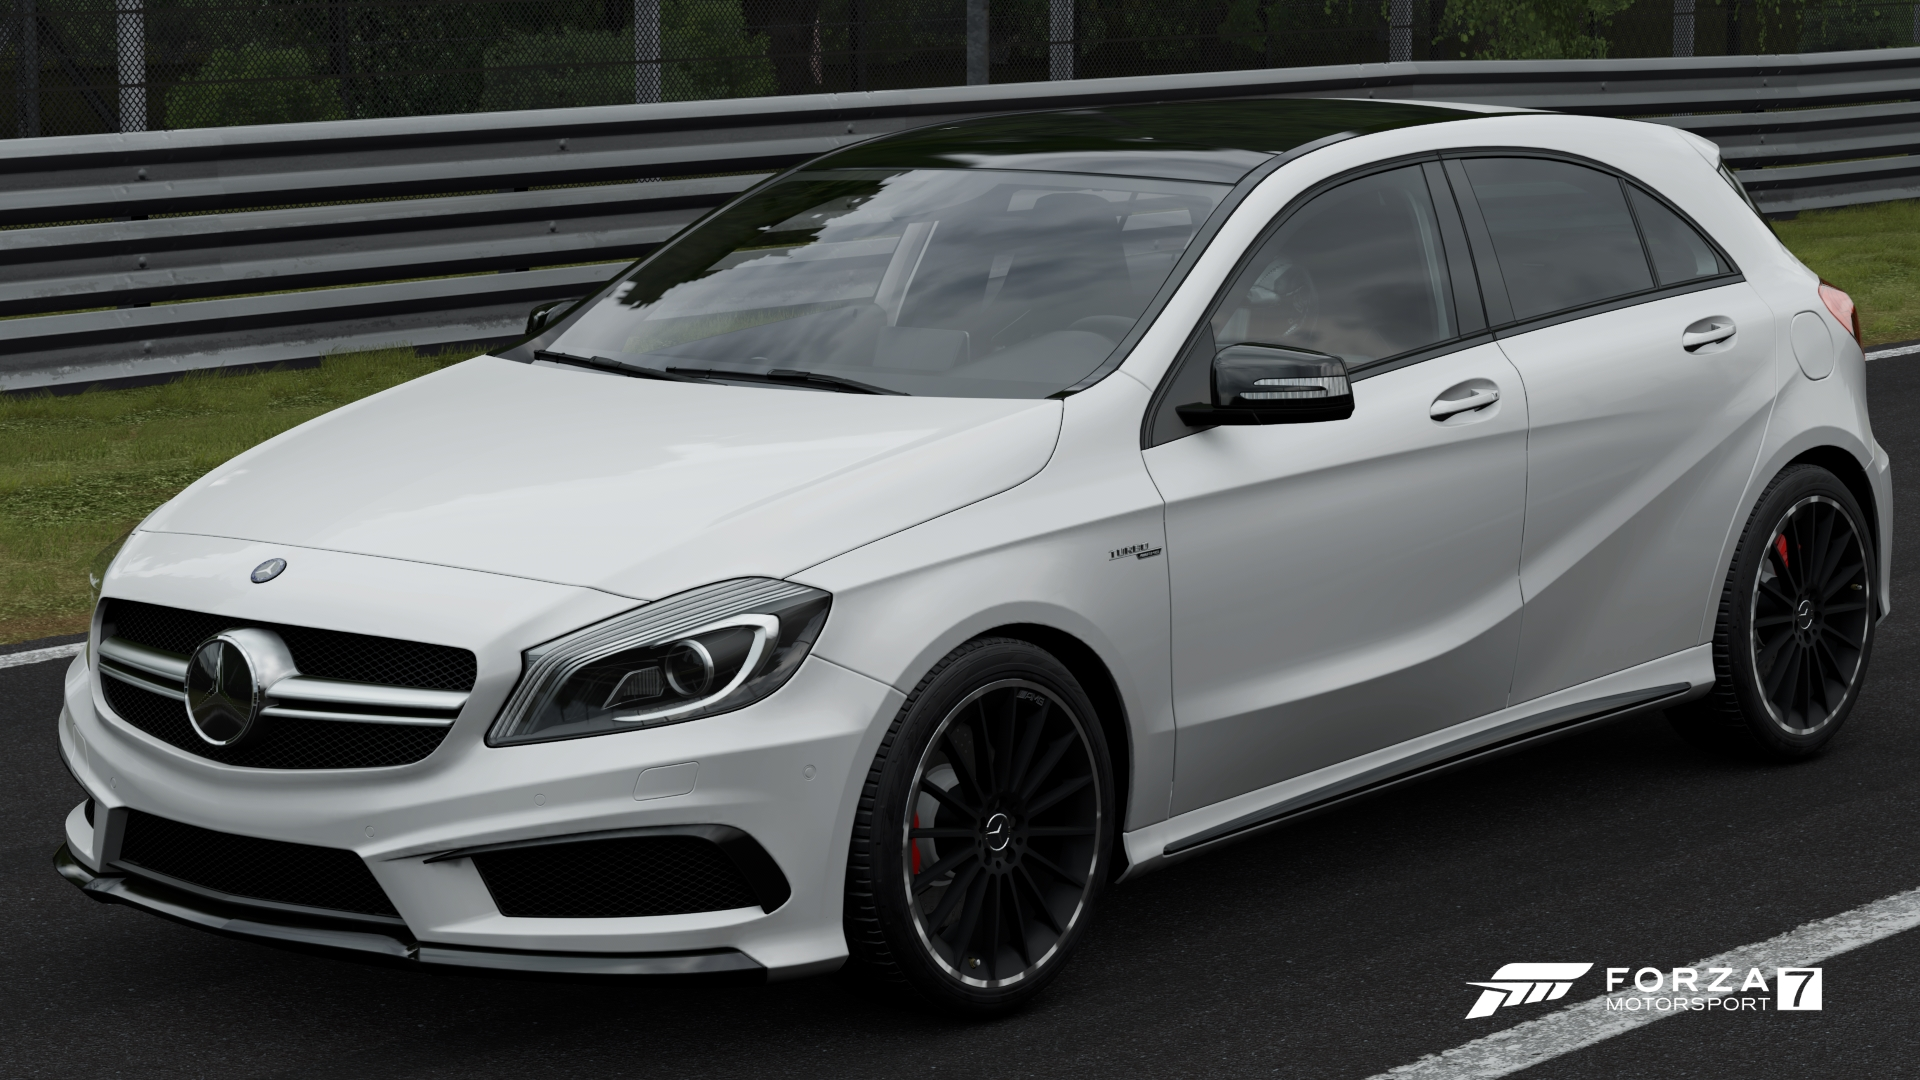 Mercedes benz a 45 amg forza motorsport wiki fandom for Mercedes benz a45 amg